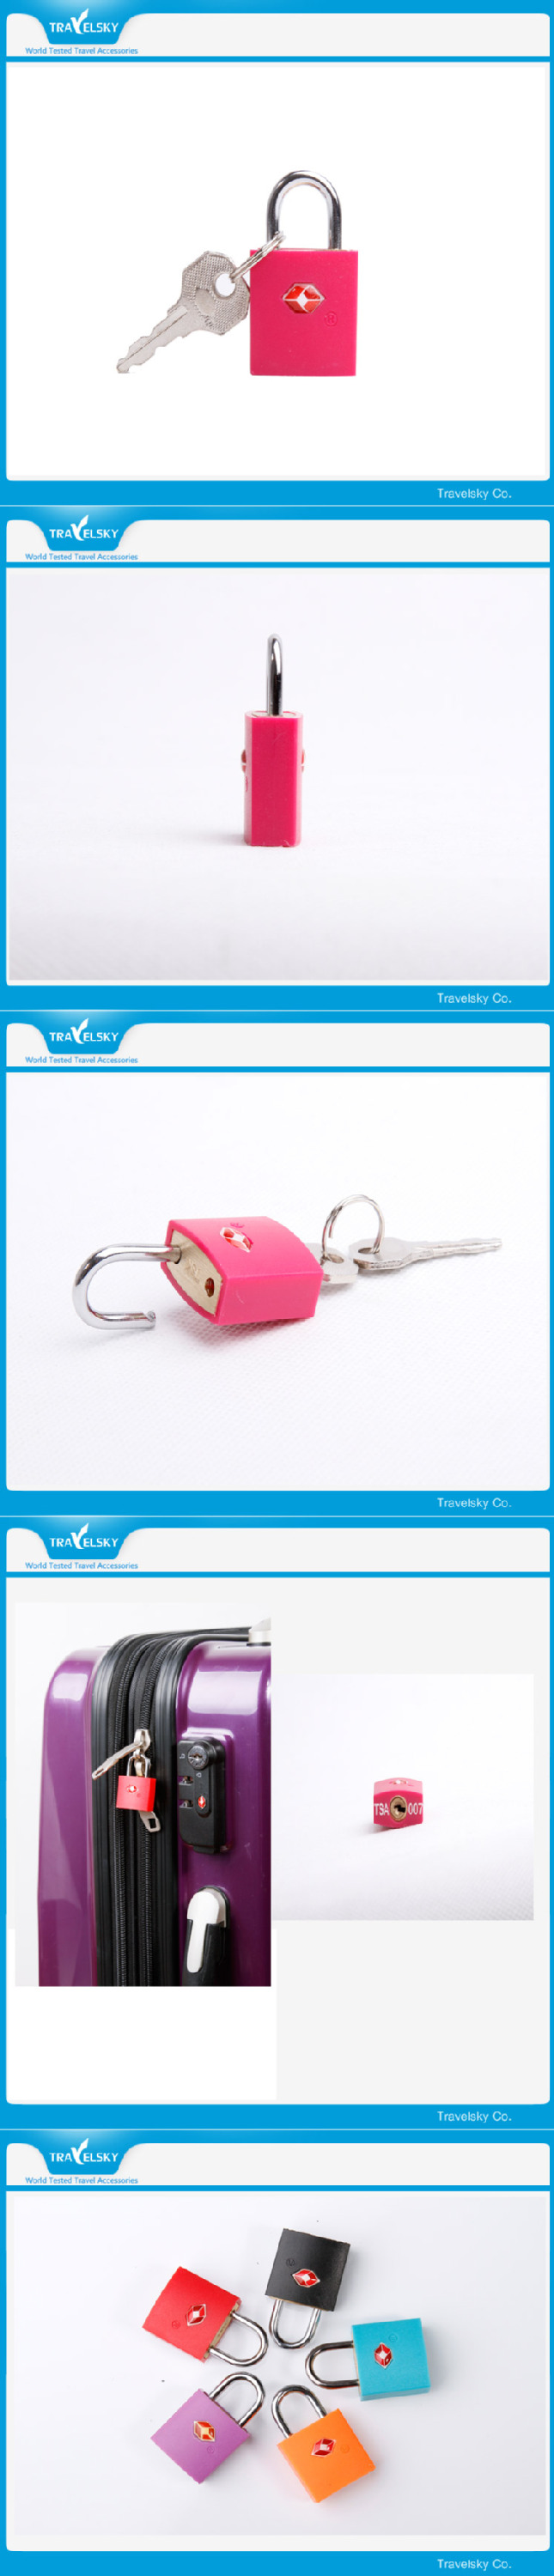 Travel Mini Luggage Safety Brass Padlock